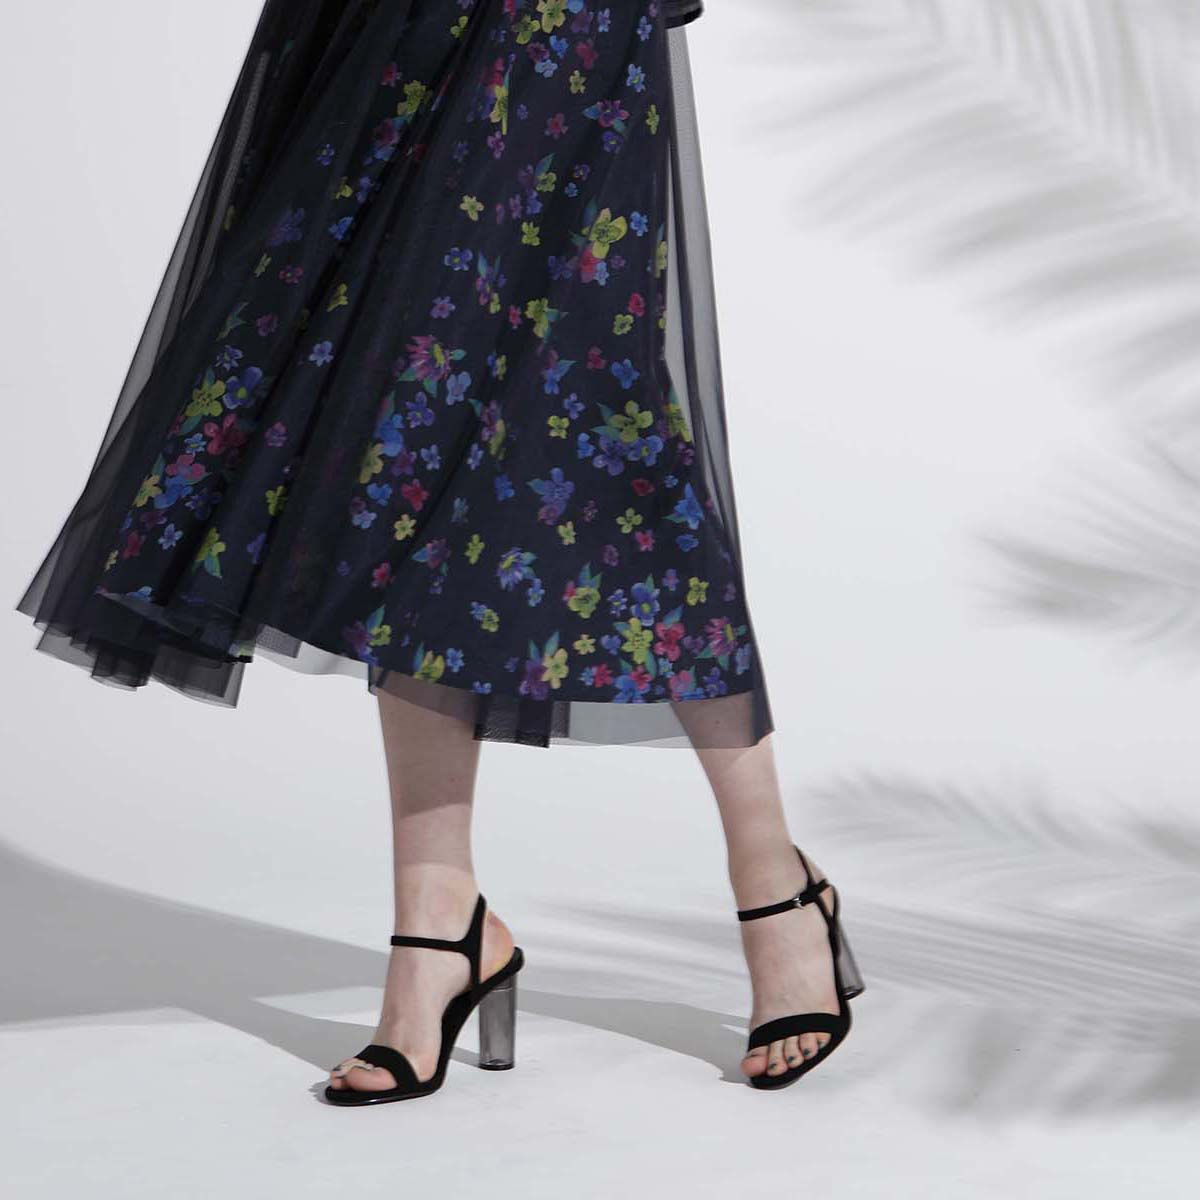 『Bouquet』Tulle Middle& Long Skirt【3月末から4月上旬お届け予定】画像